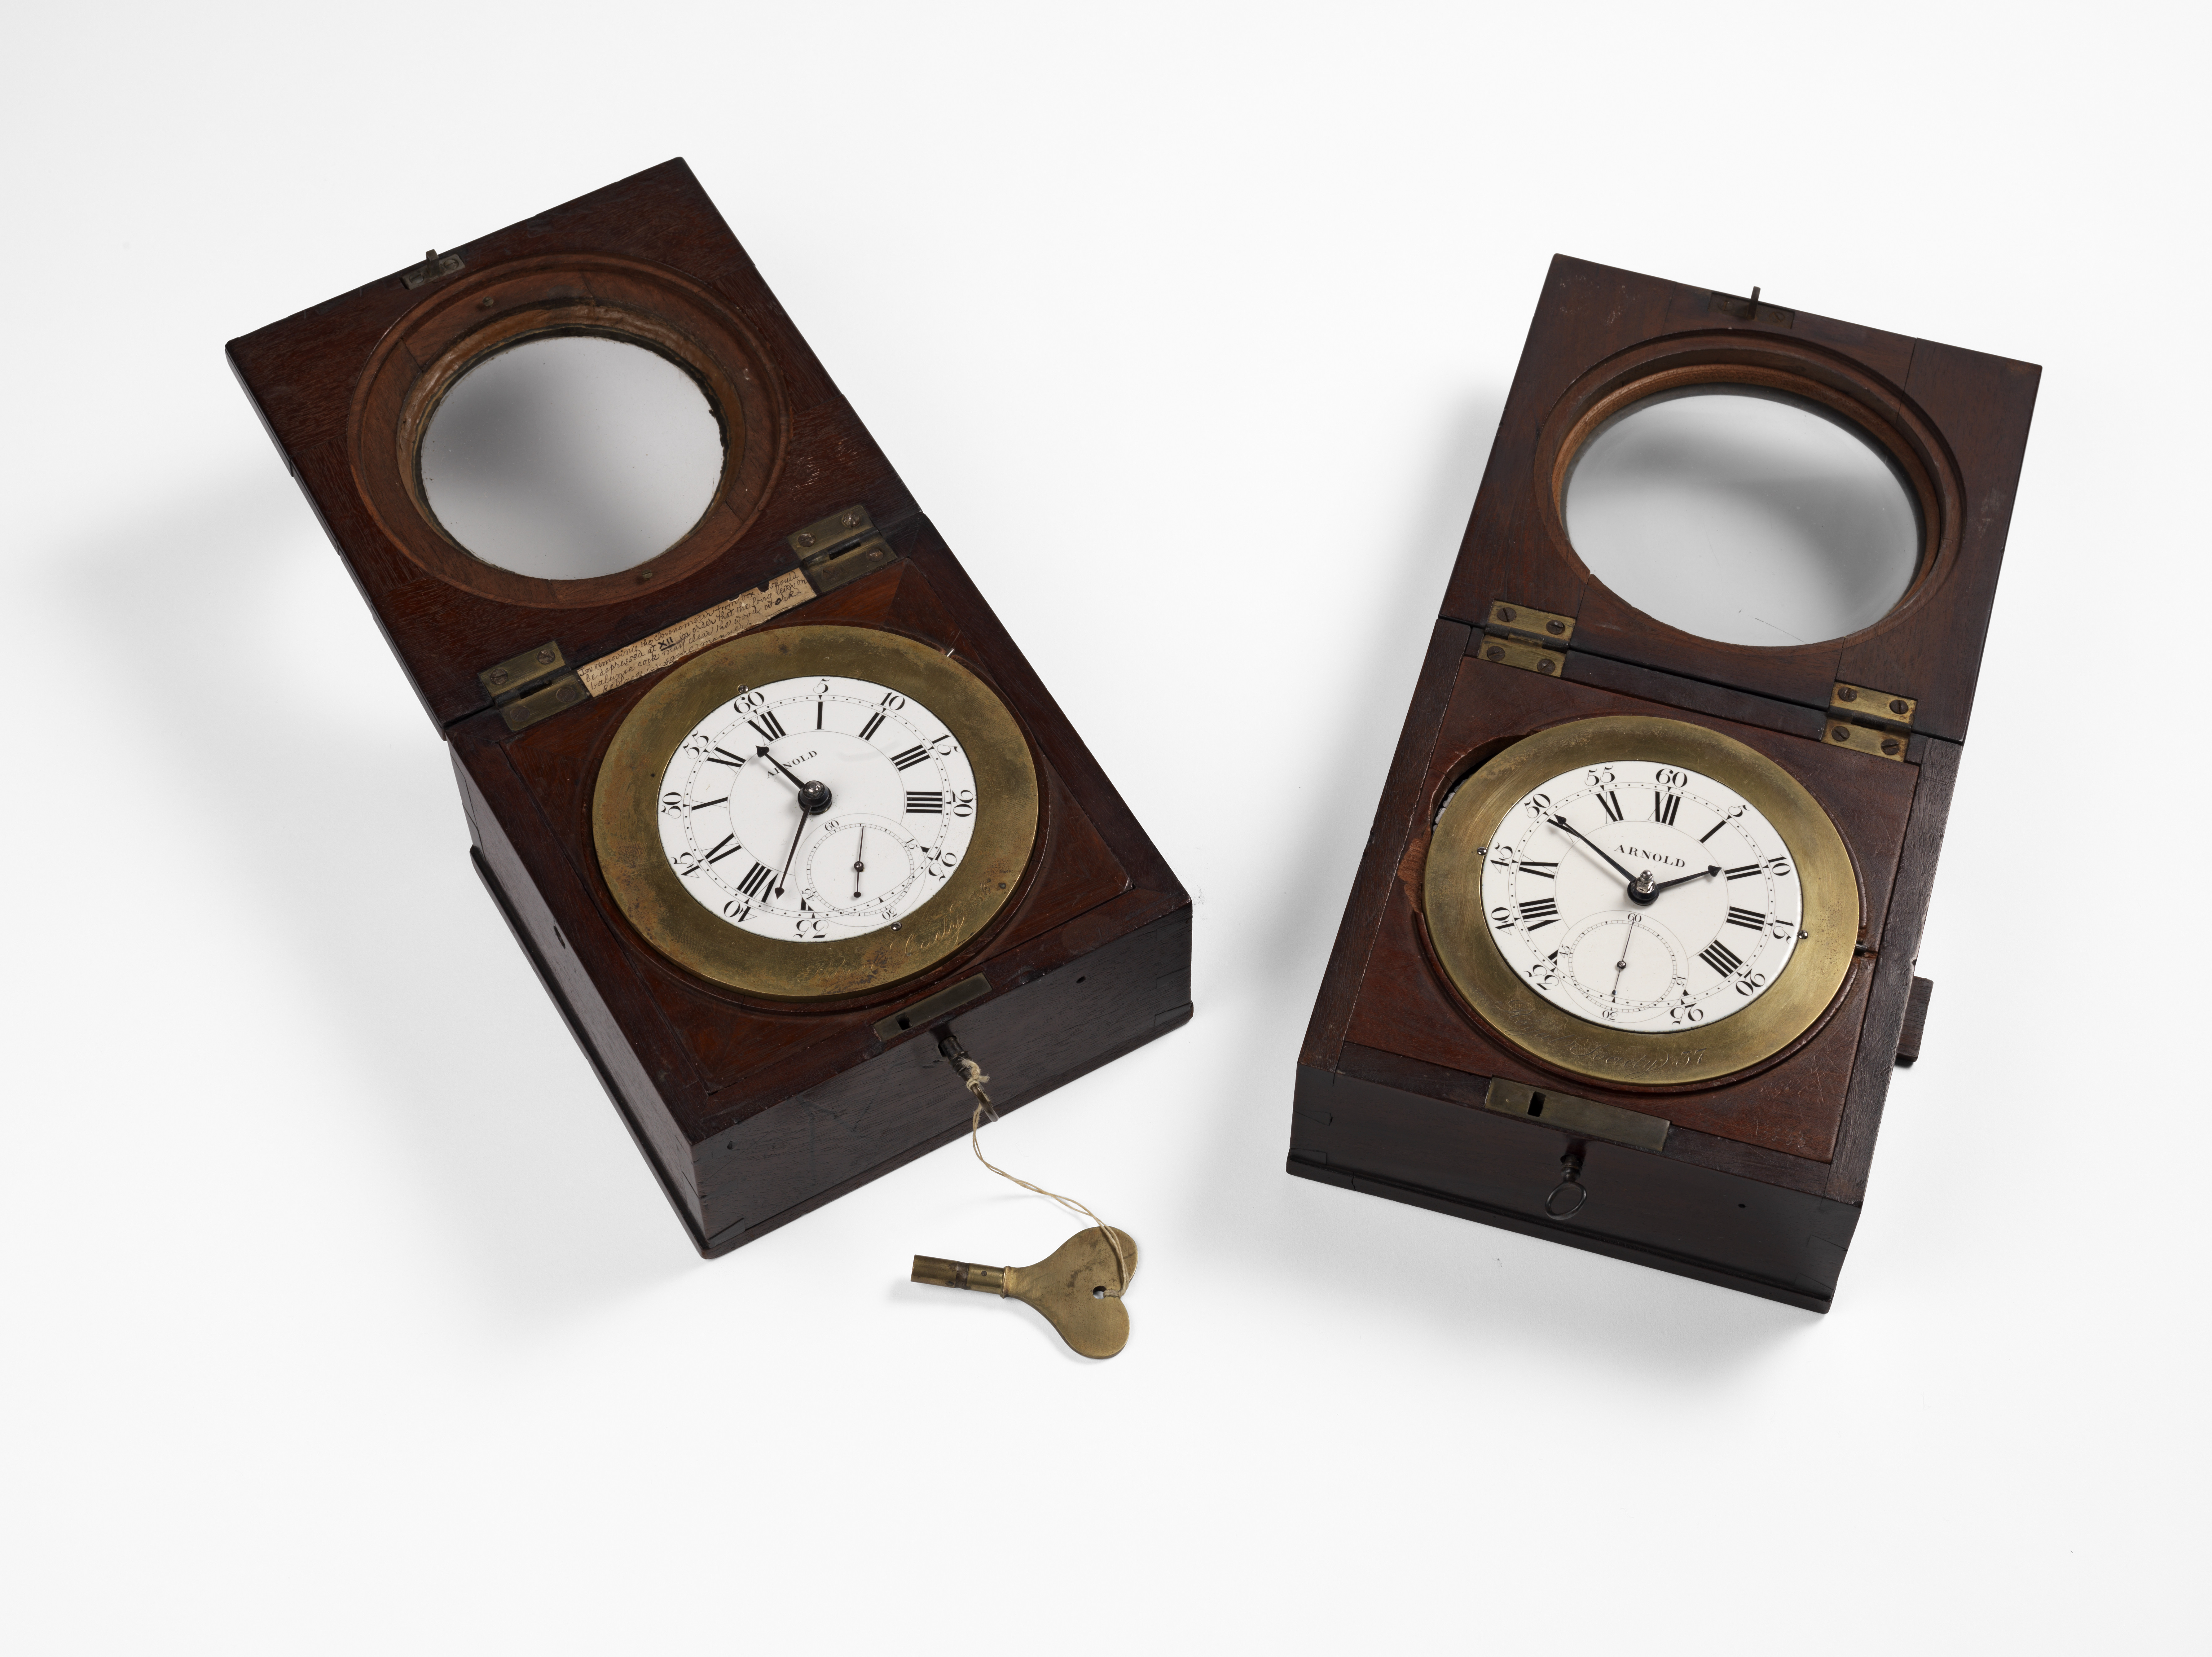 Copies of Harrison's chronometer made by John Arnold (c) Royal Society